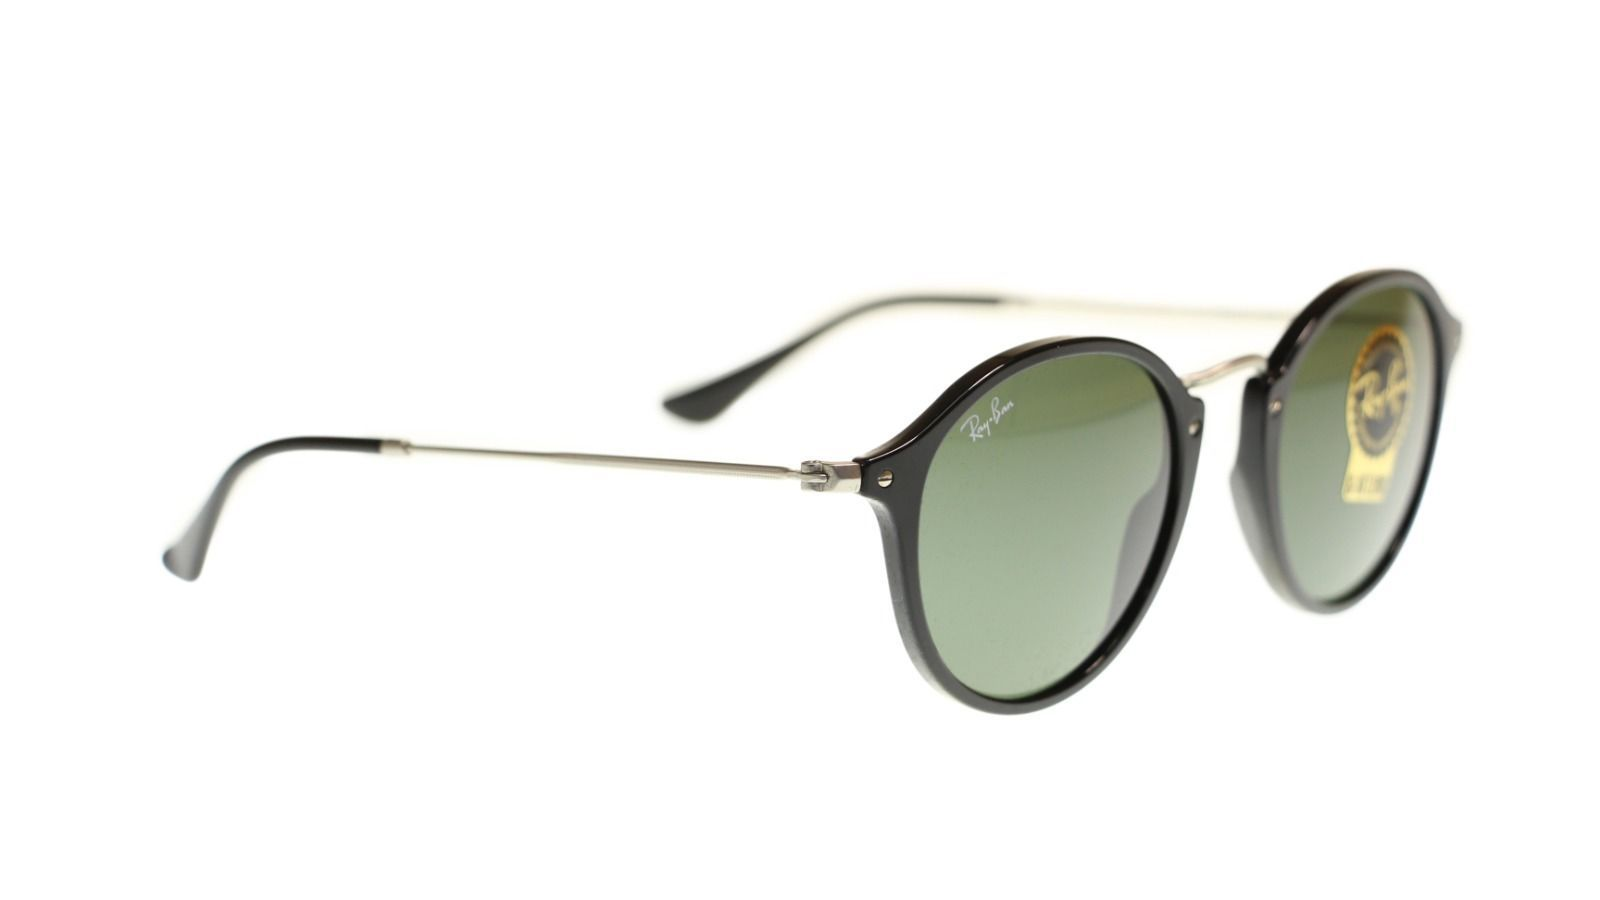 Ray Ban Men's Sunglasses RB2447 901 Black With Green Lens Round 49mm Authentic